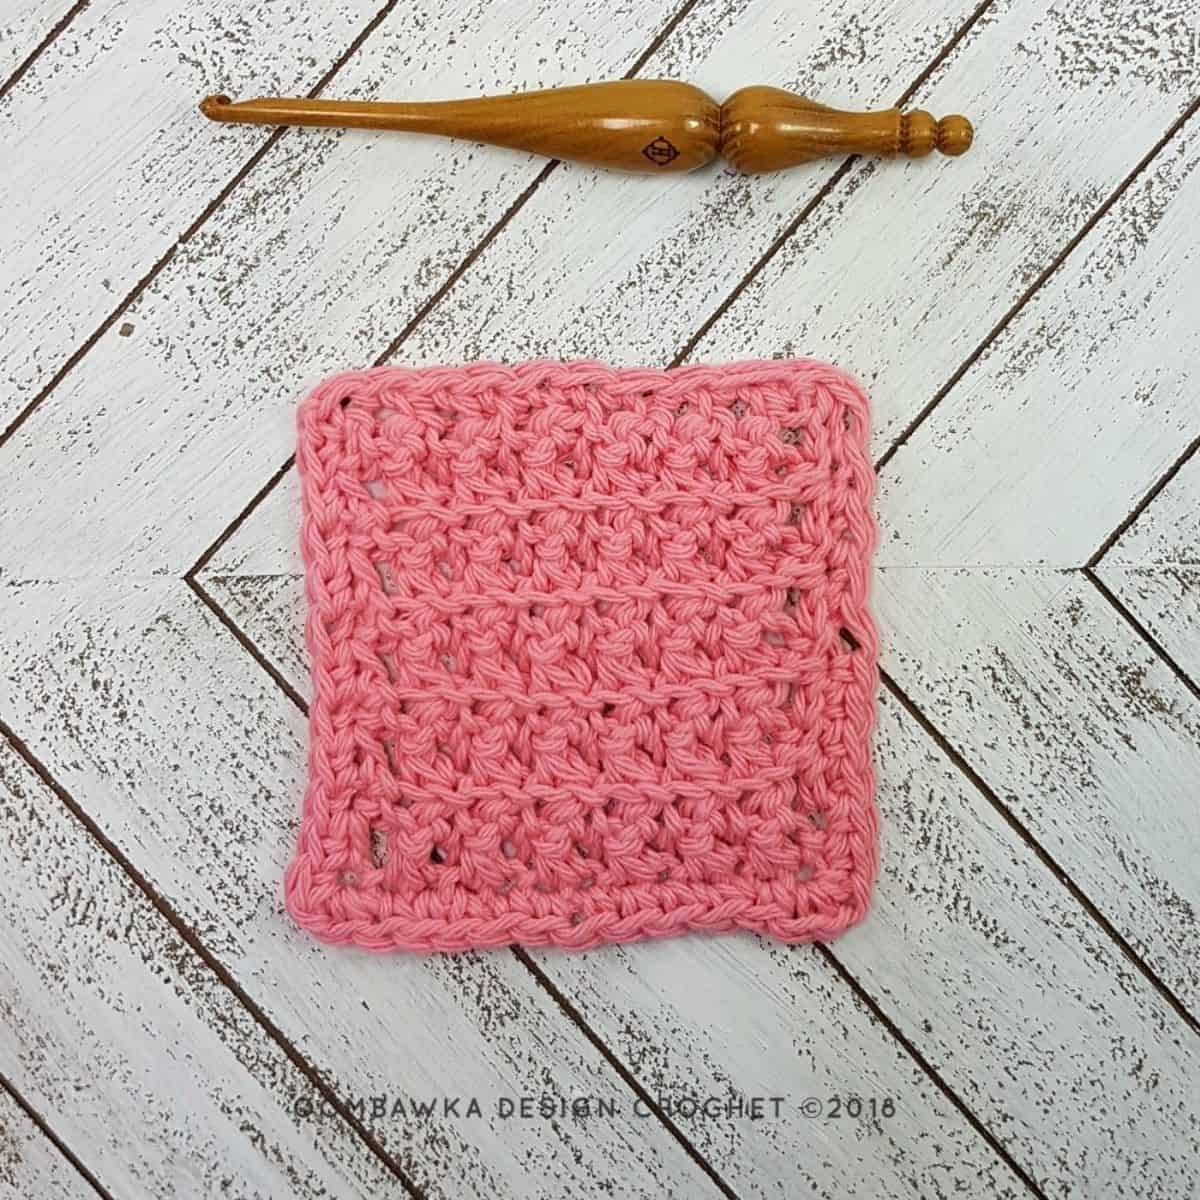 small pink square crochet stitches swatch laying flat next to a wooden crochet hook